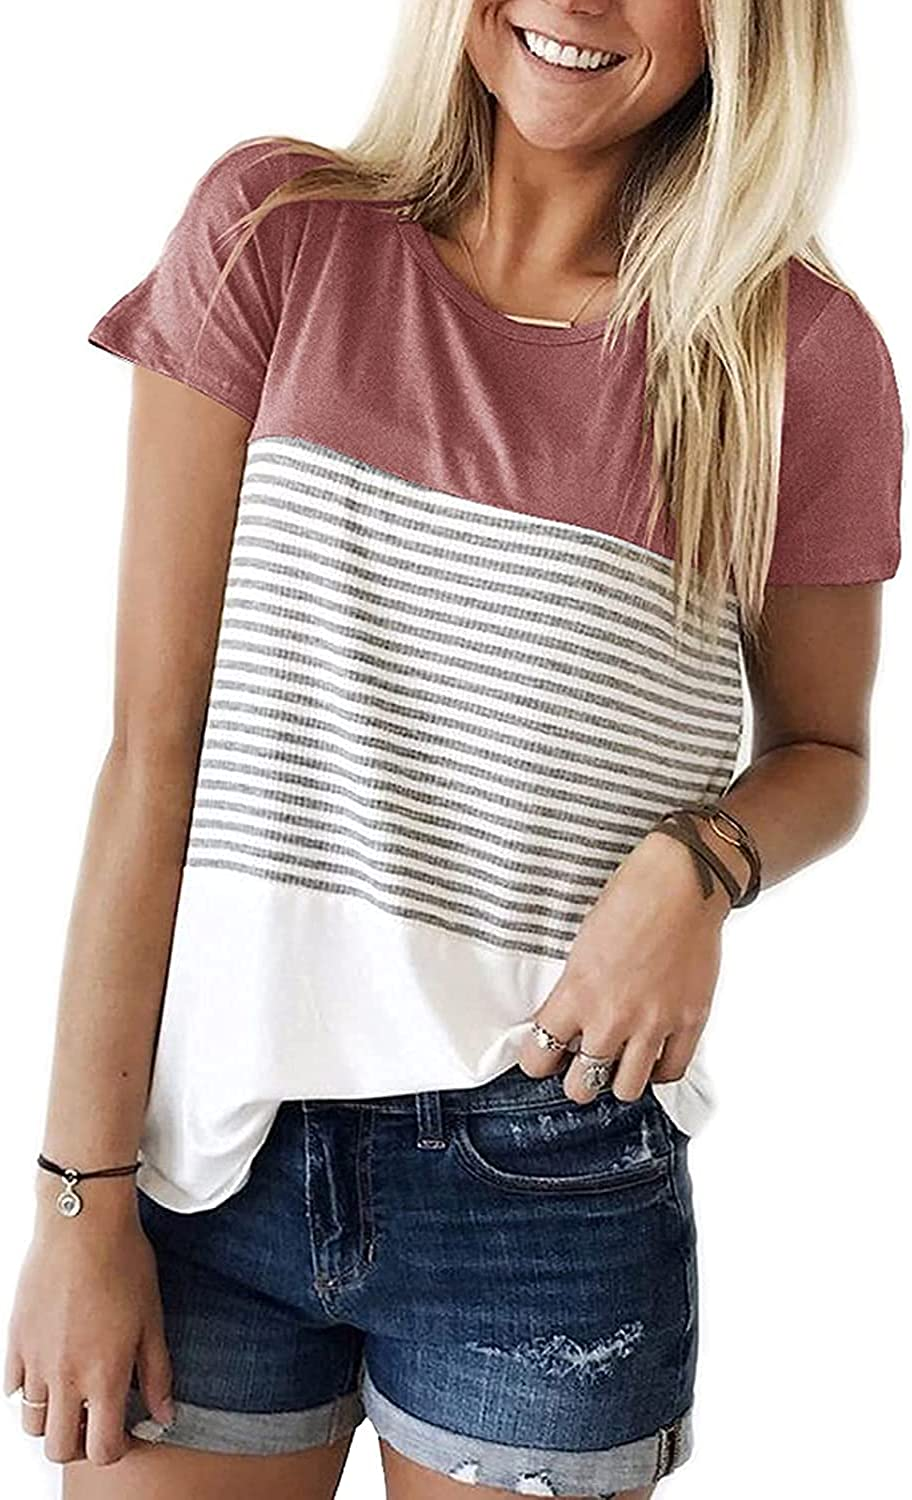 Aygience Outlet sale feature Womens Short Sleeve Striped T-Shirt Block specialty shop Color